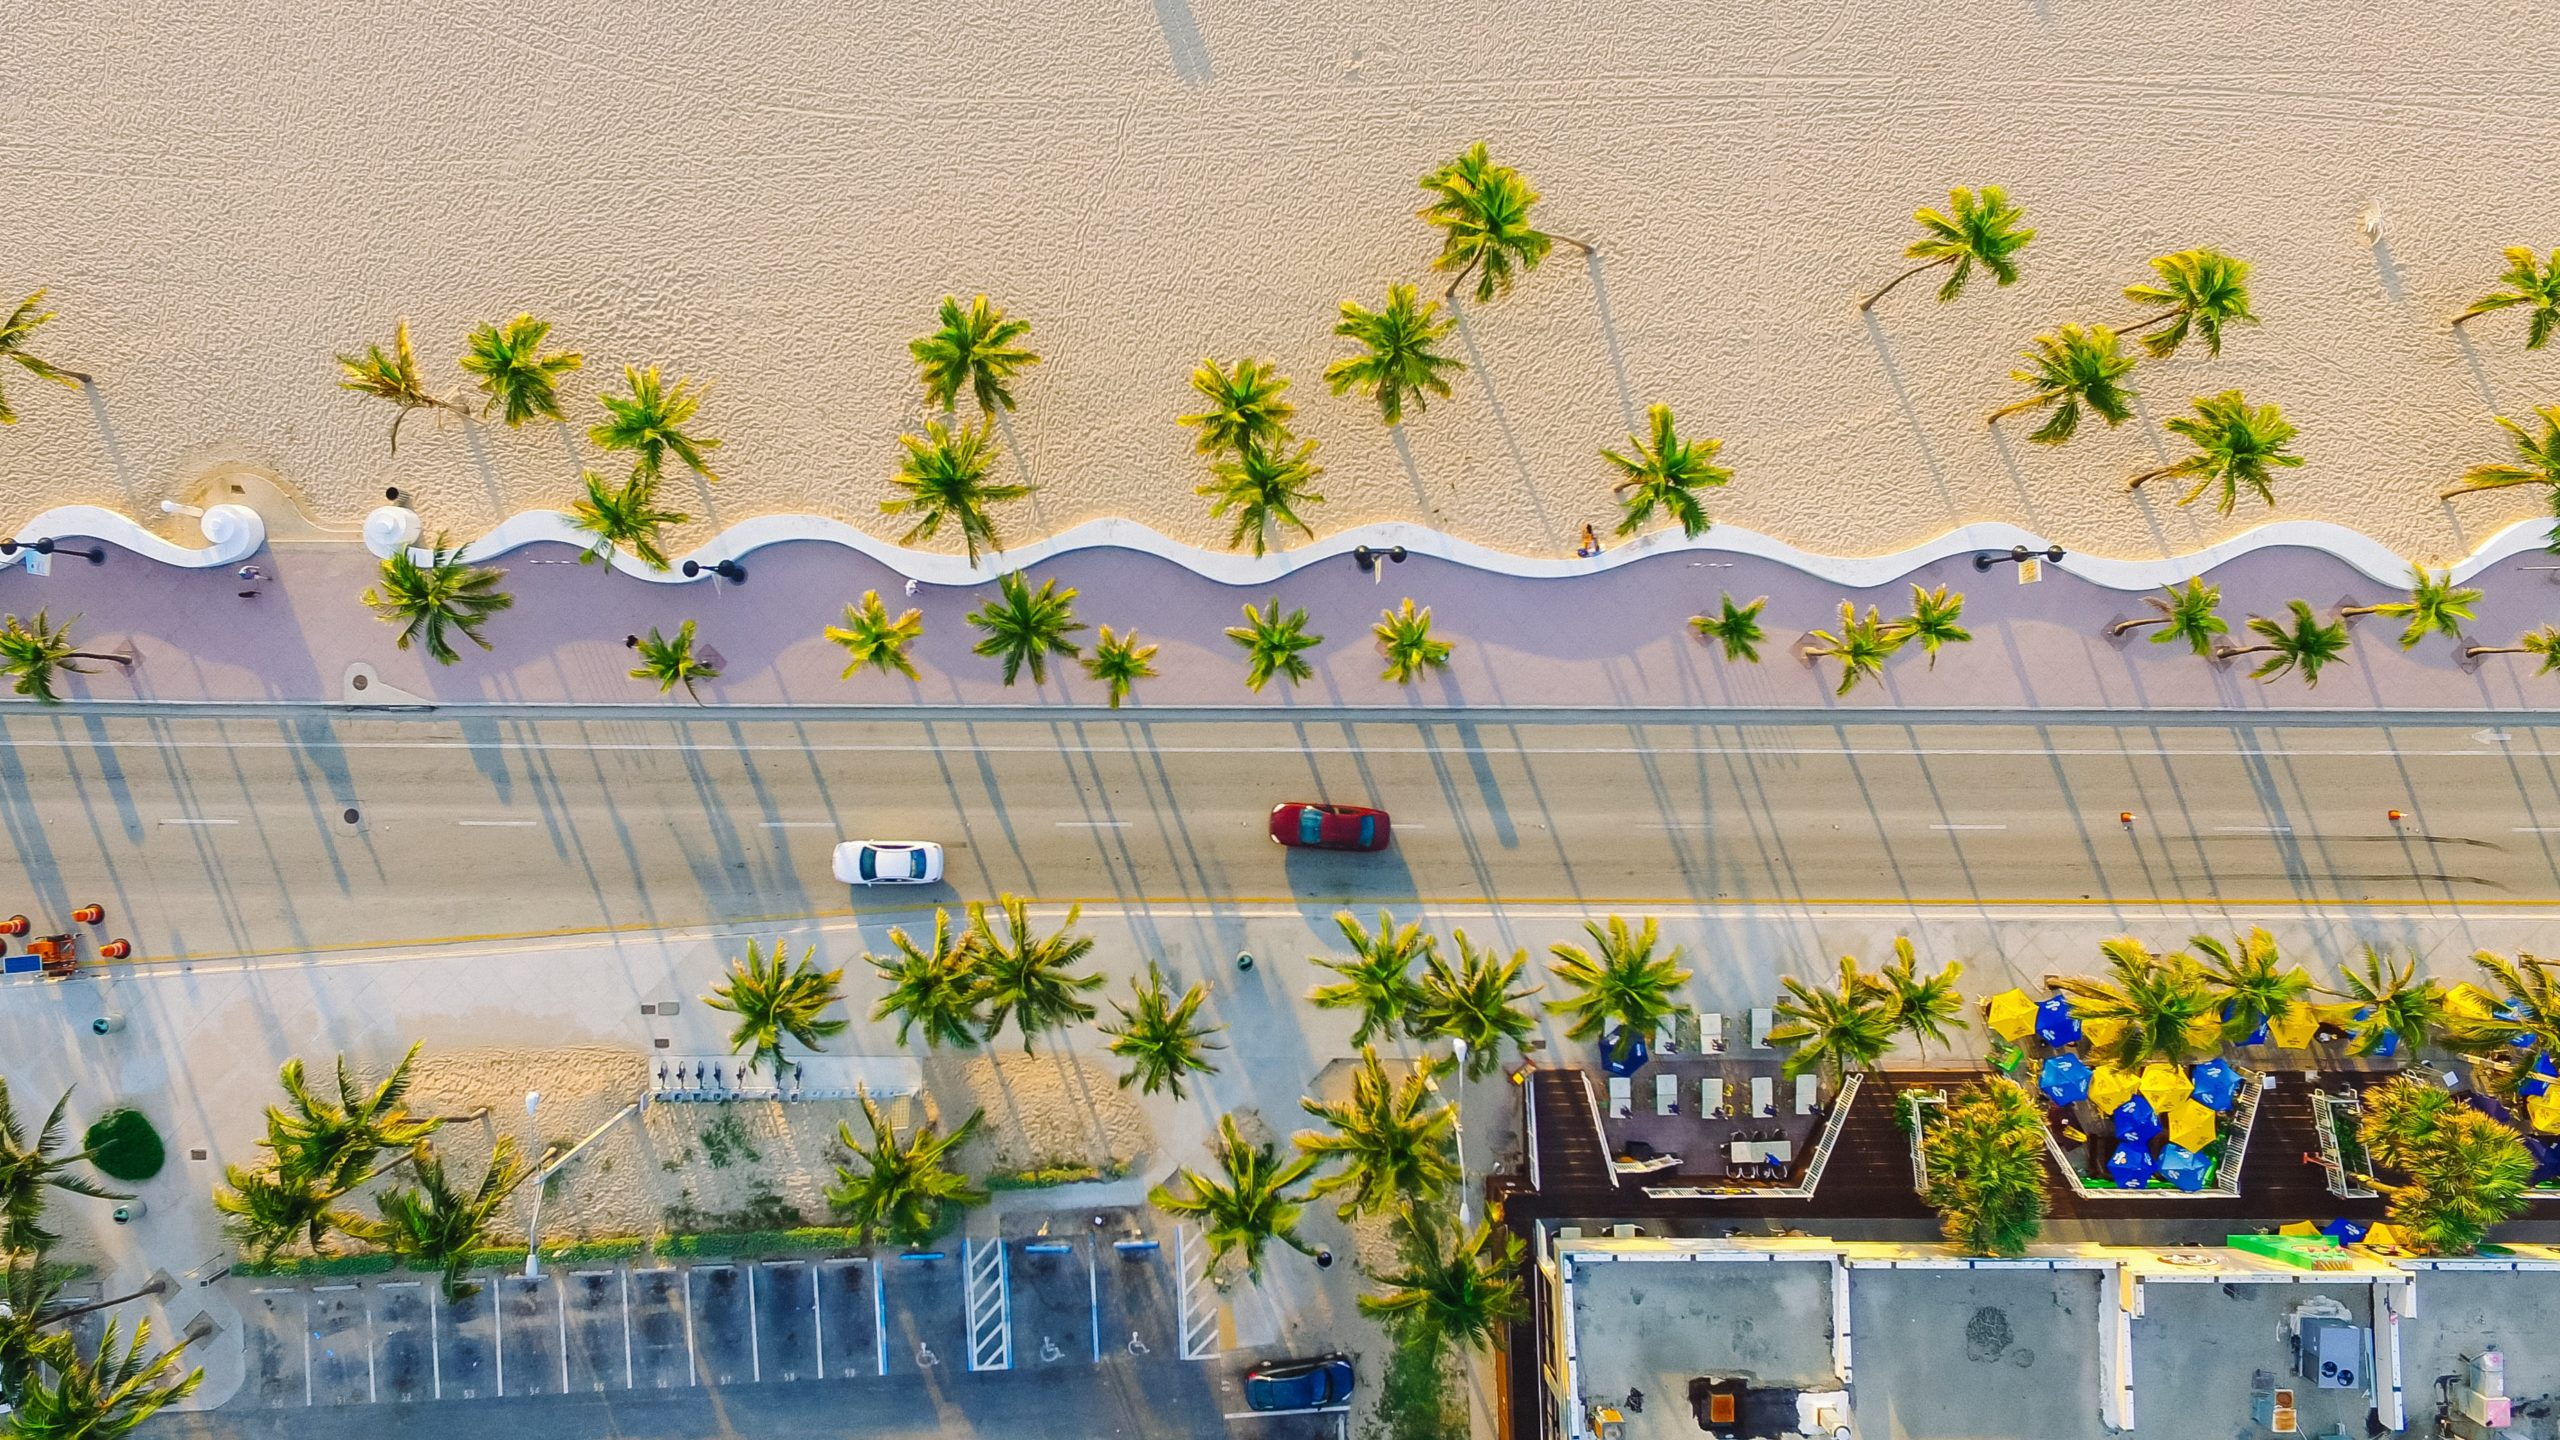 Hidden gems in Miami include these dreamy birds-eye views of palm trees and iconic strips.